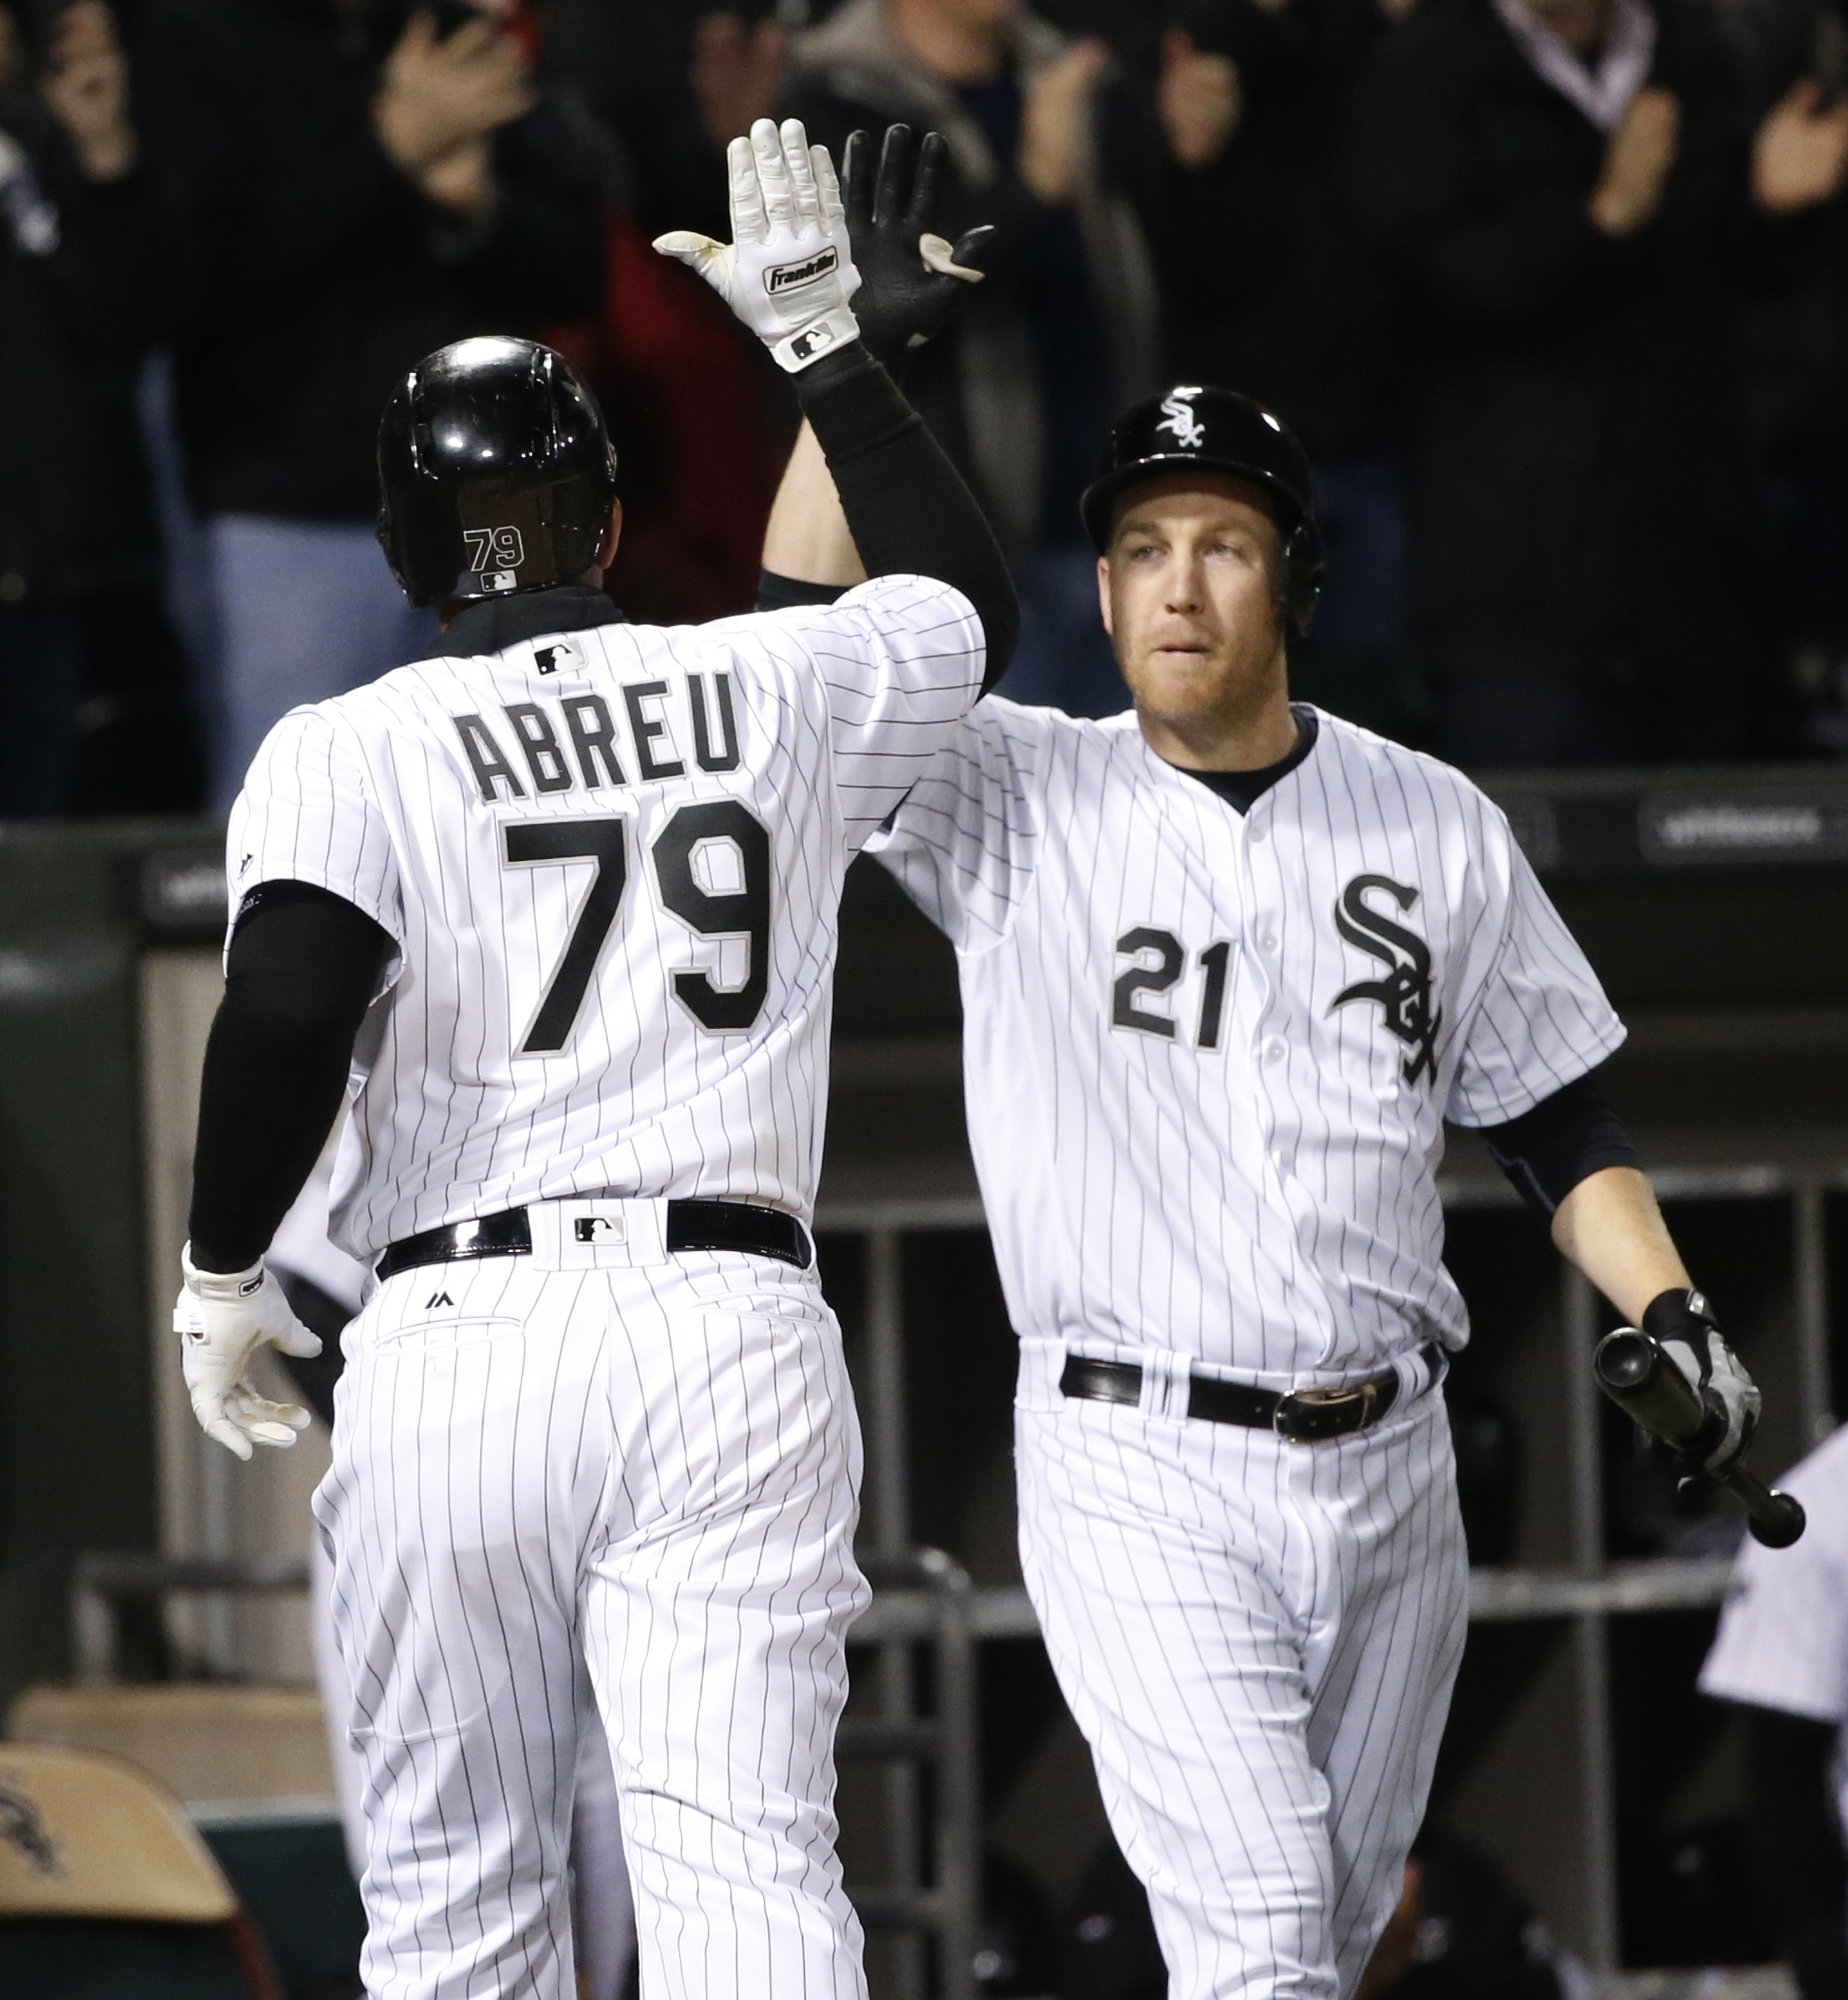 Chicago White Sox's Jose Abreu, left, celebrates his home run off Los Angeles Angels starting pitcher Matt Shoemaker with Todd Frazier during the fourth inning of a baseball game Tuesday, April 19, 2016, in Chicago. (AP Photo/Charles Rex Arbogast)